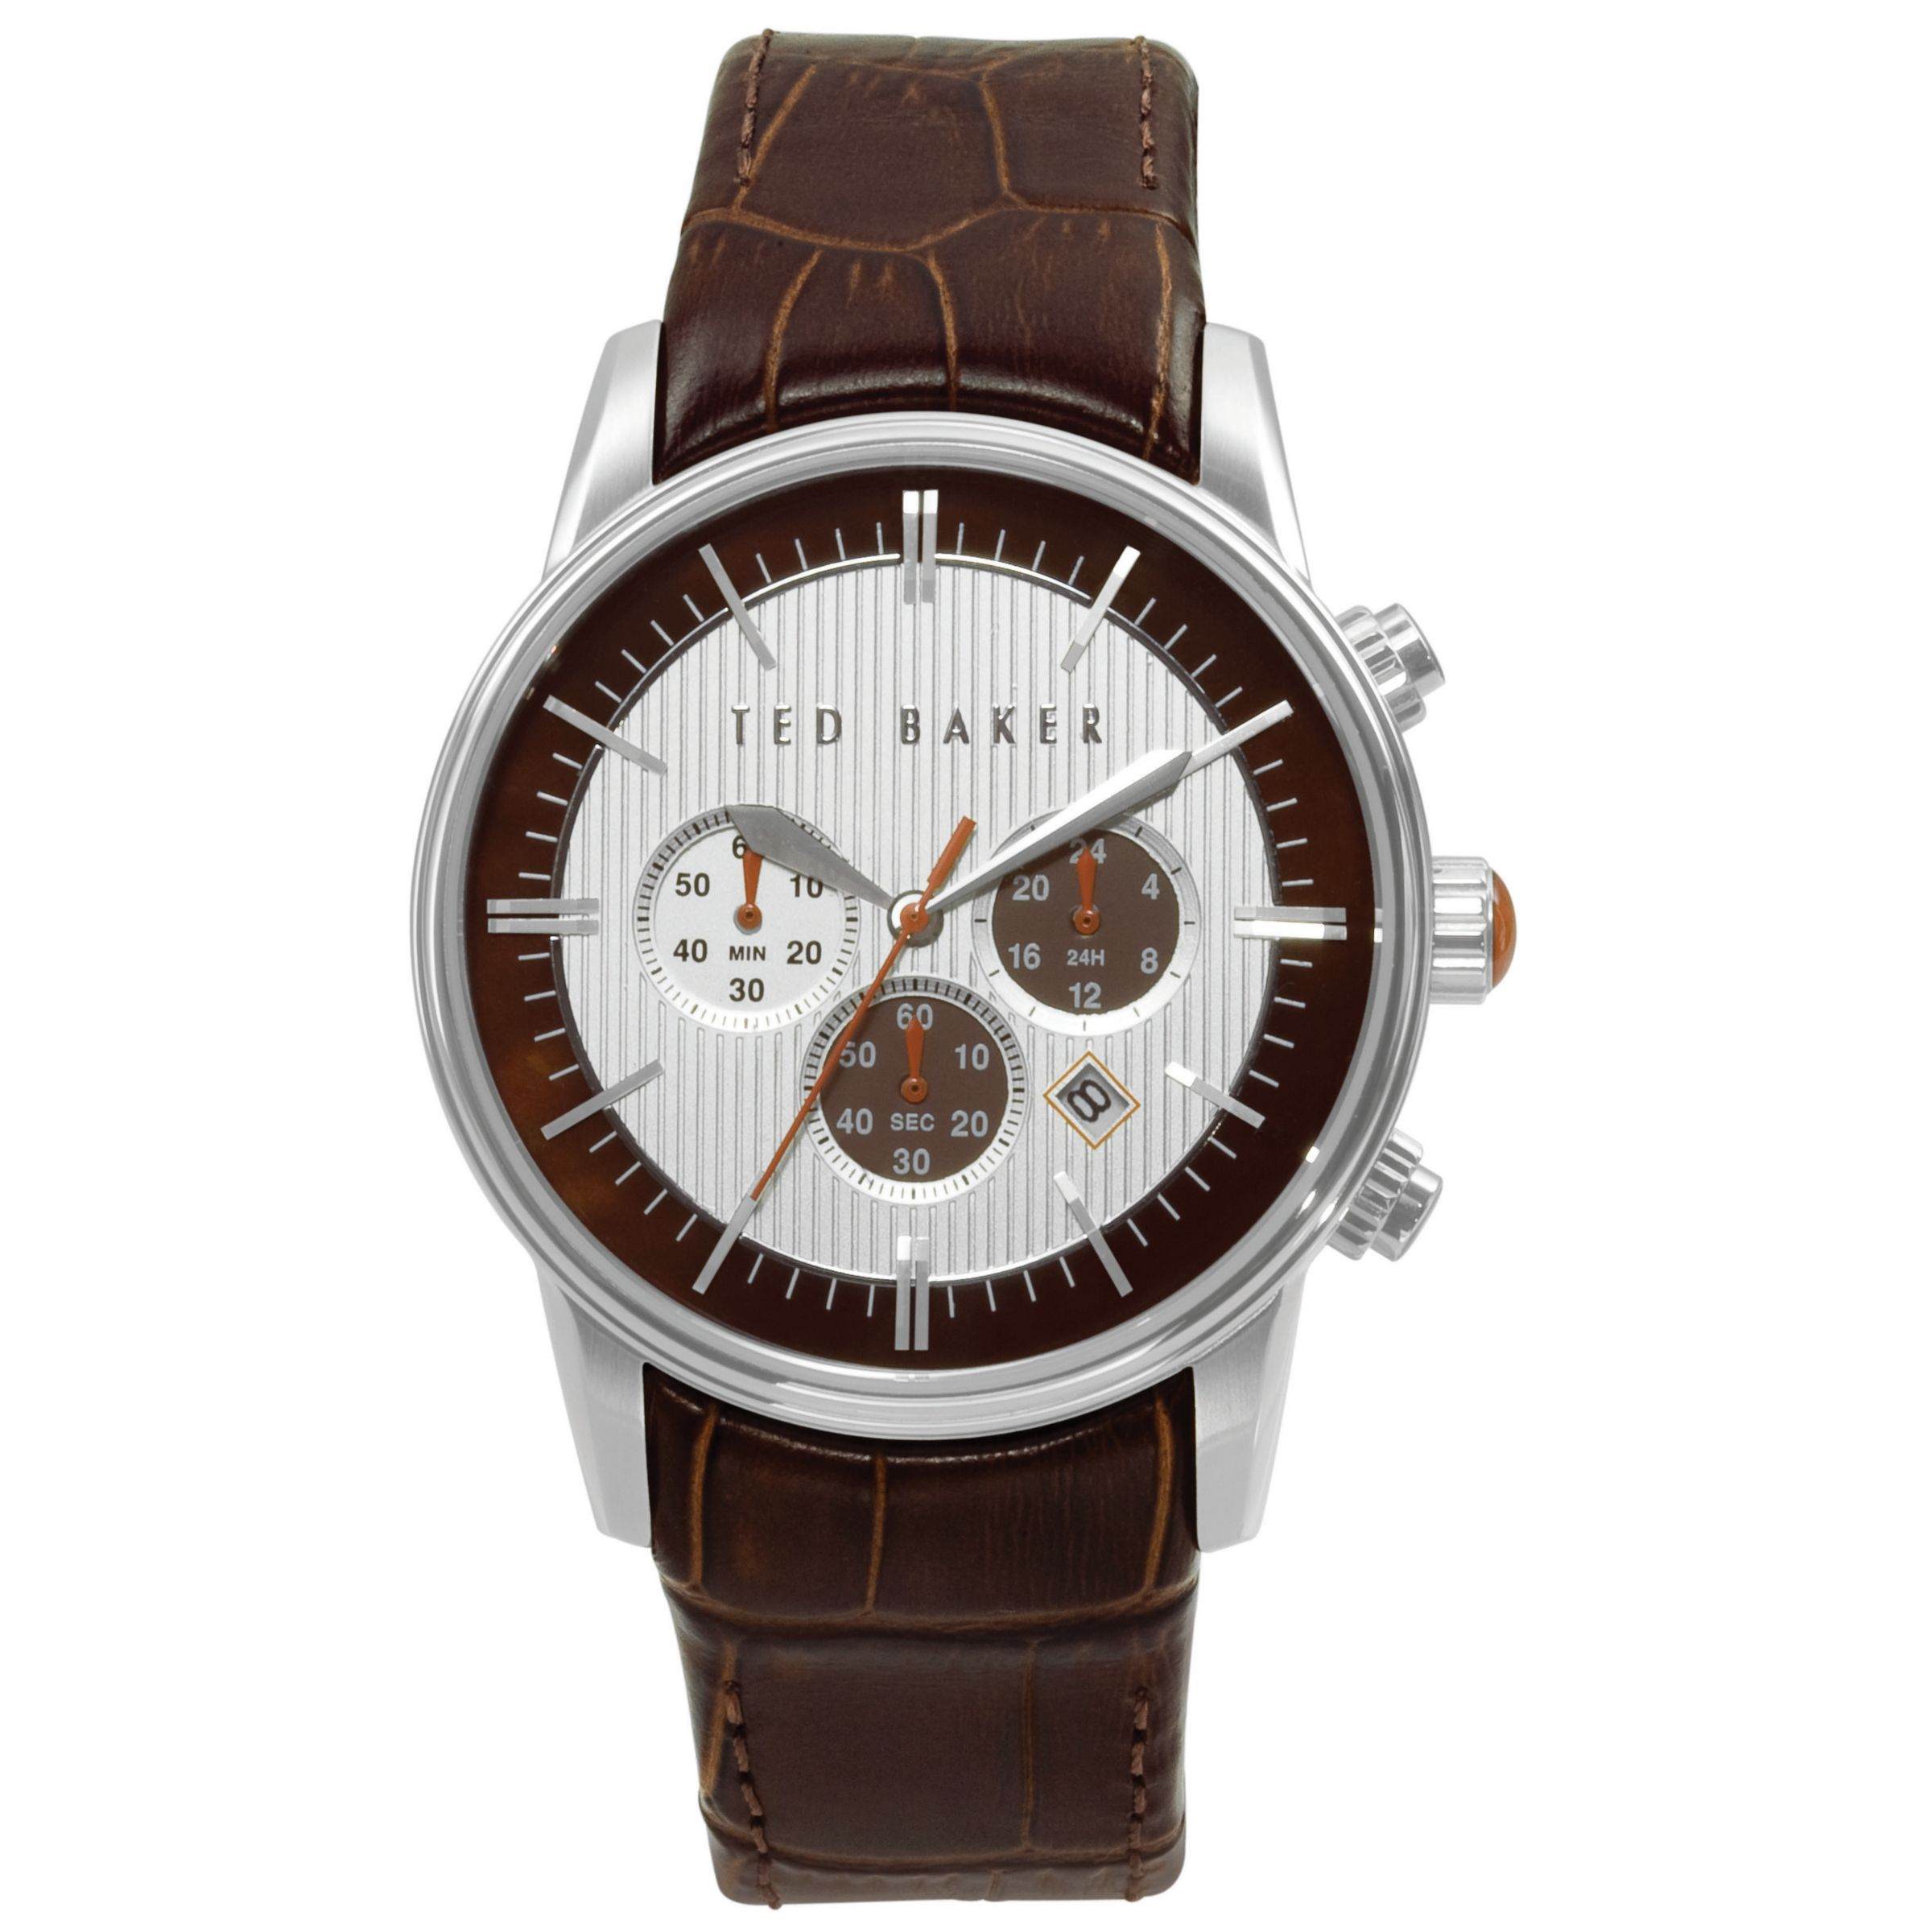 Ted Baker TE1015 Men